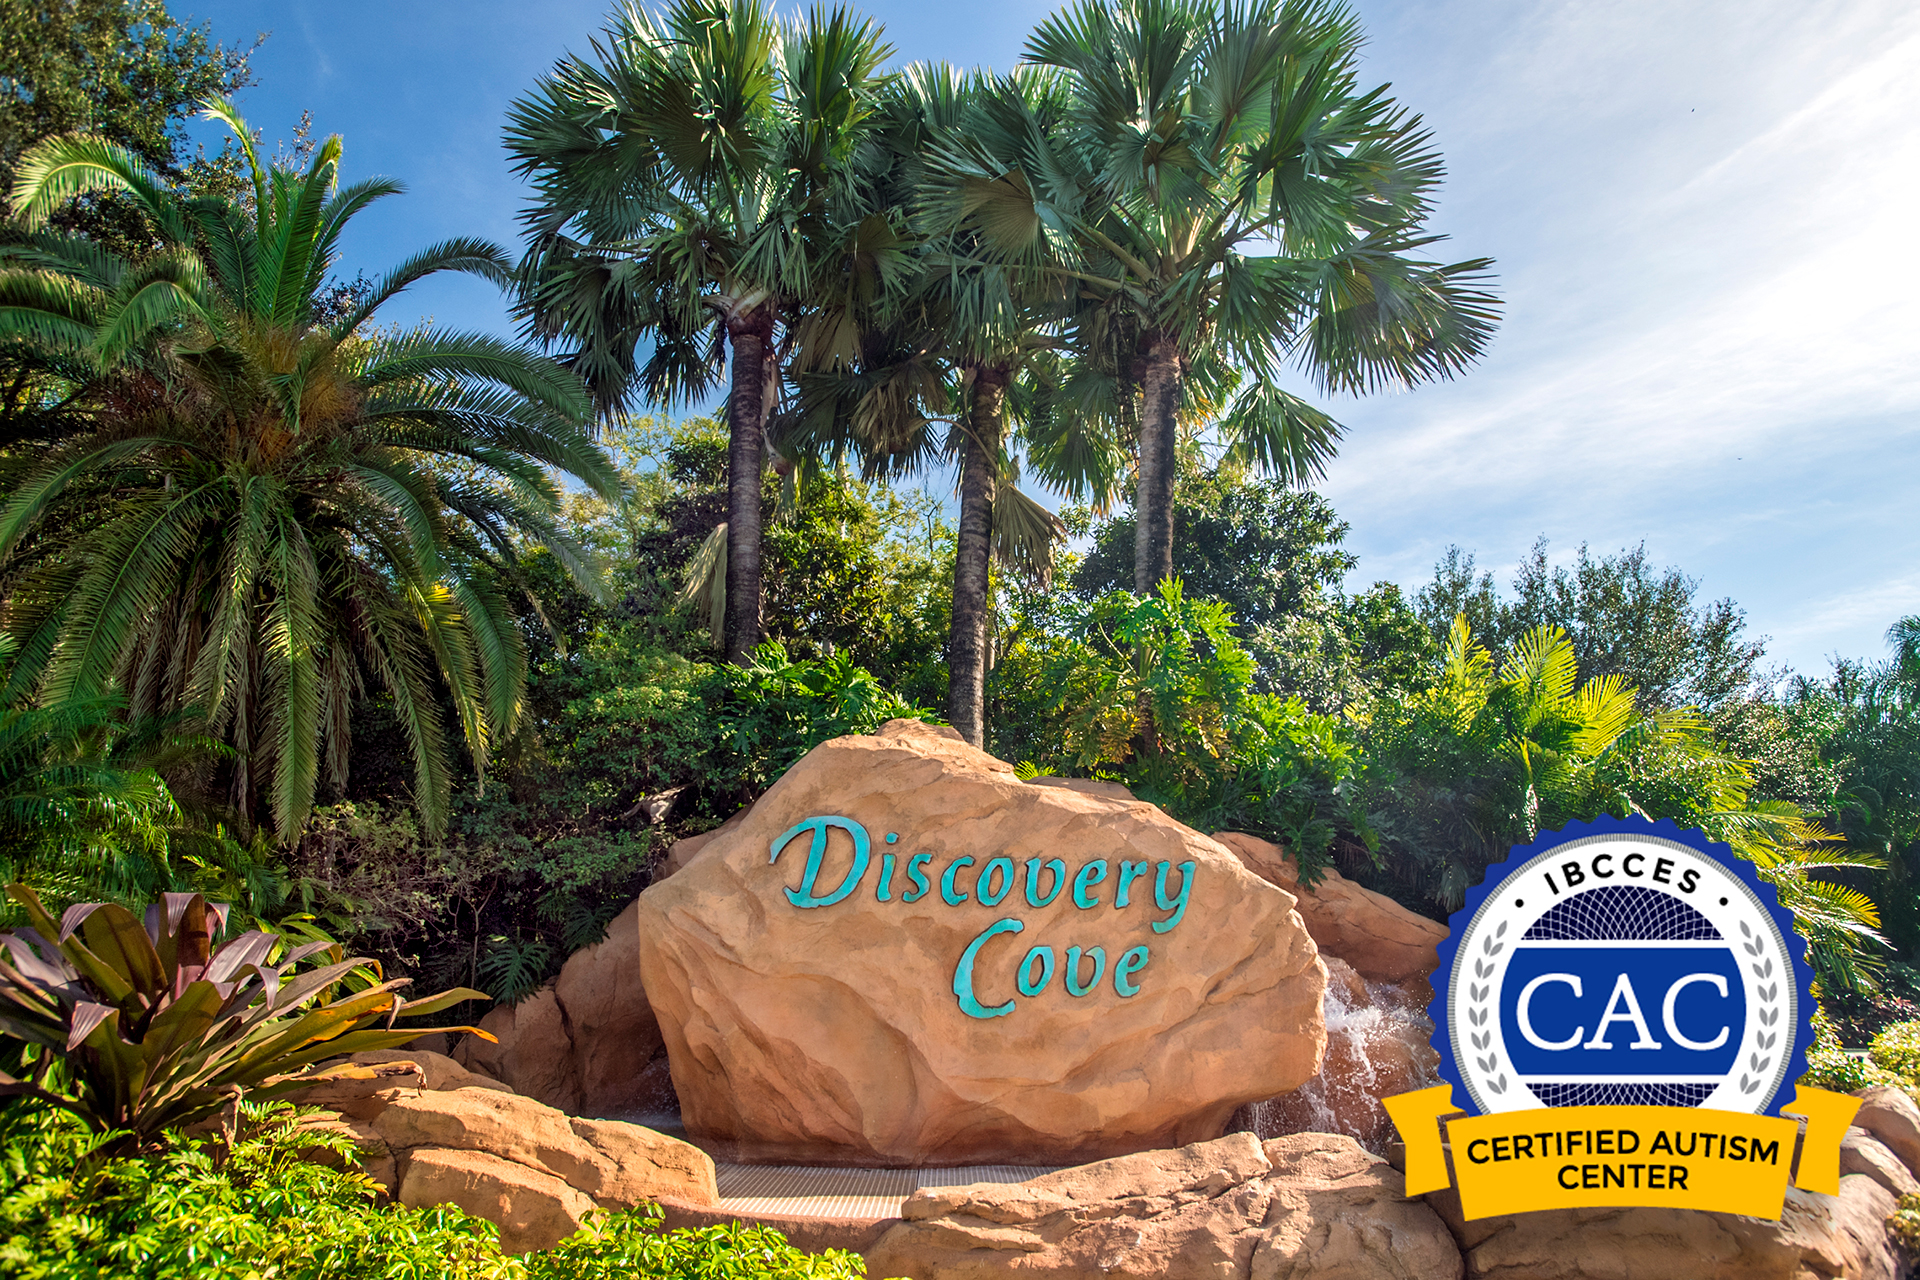 Discovery Cove in Orlando - Certified Autism Center; Courtesy of Discovery Cove